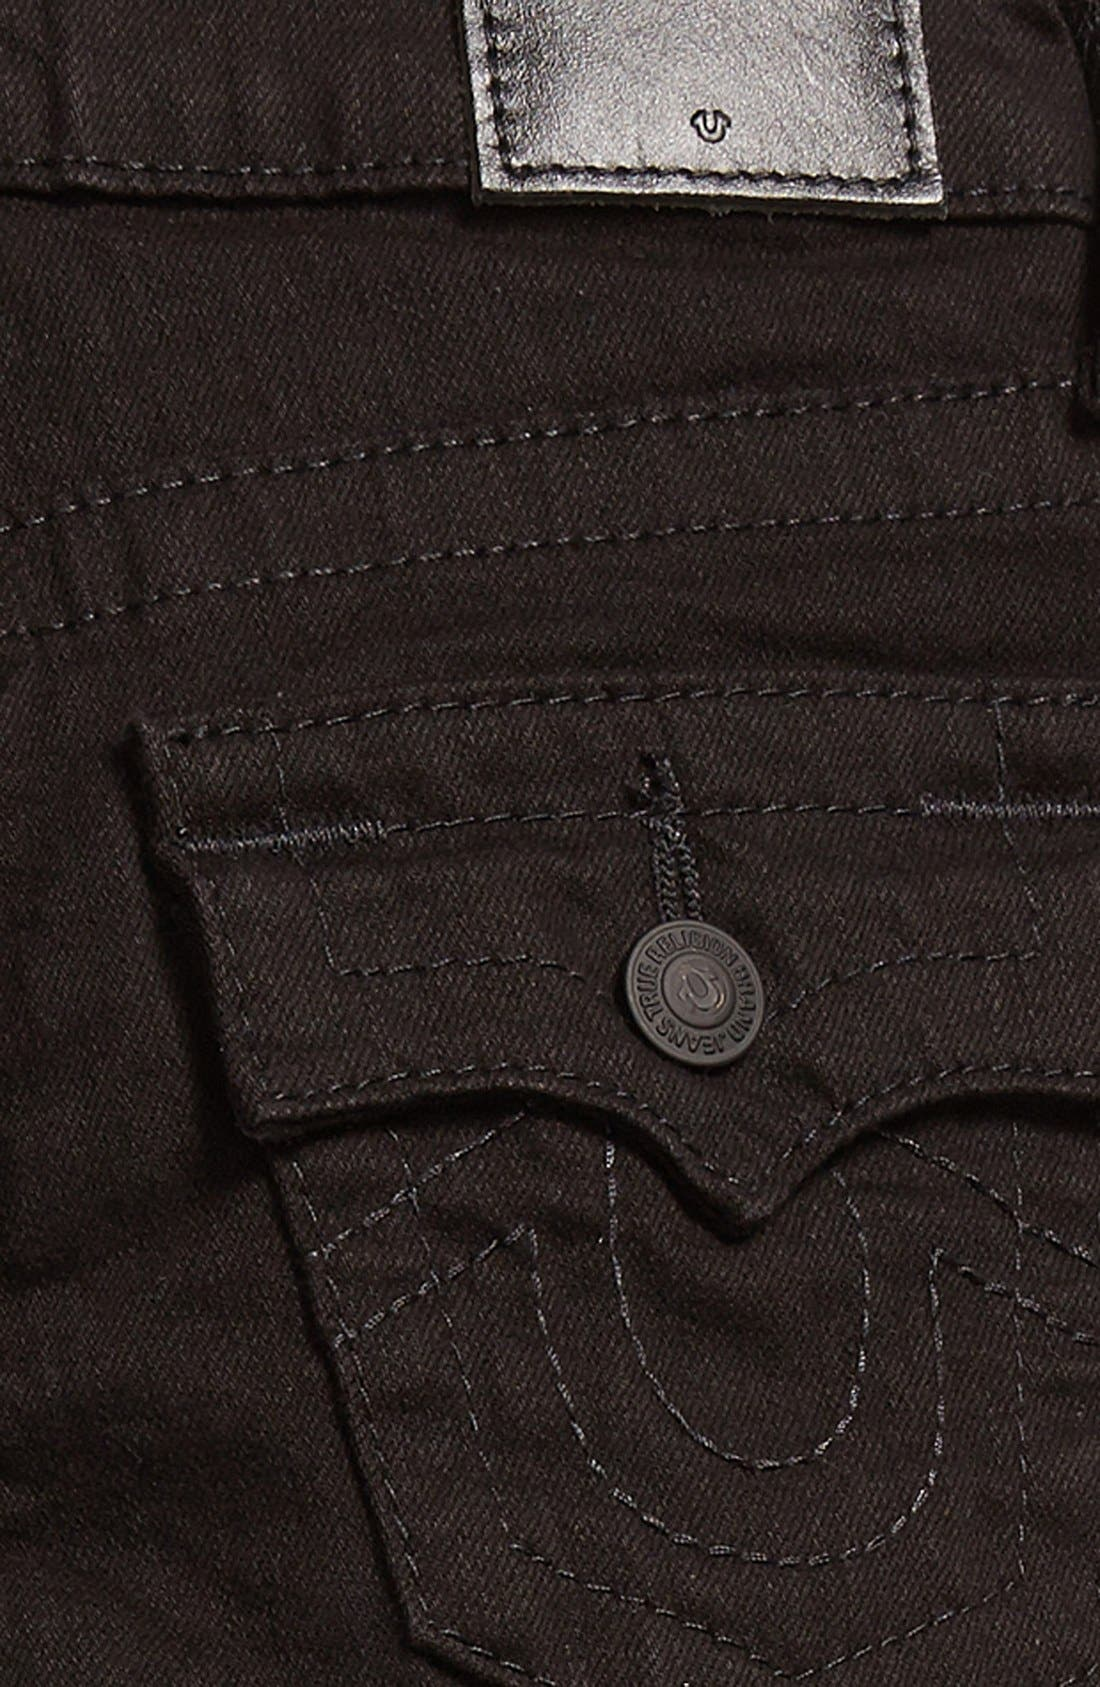 'Geno' Relaxed Slim Fit Jeans,                             Alternate thumbnail 3, color,                             Superfly Wash